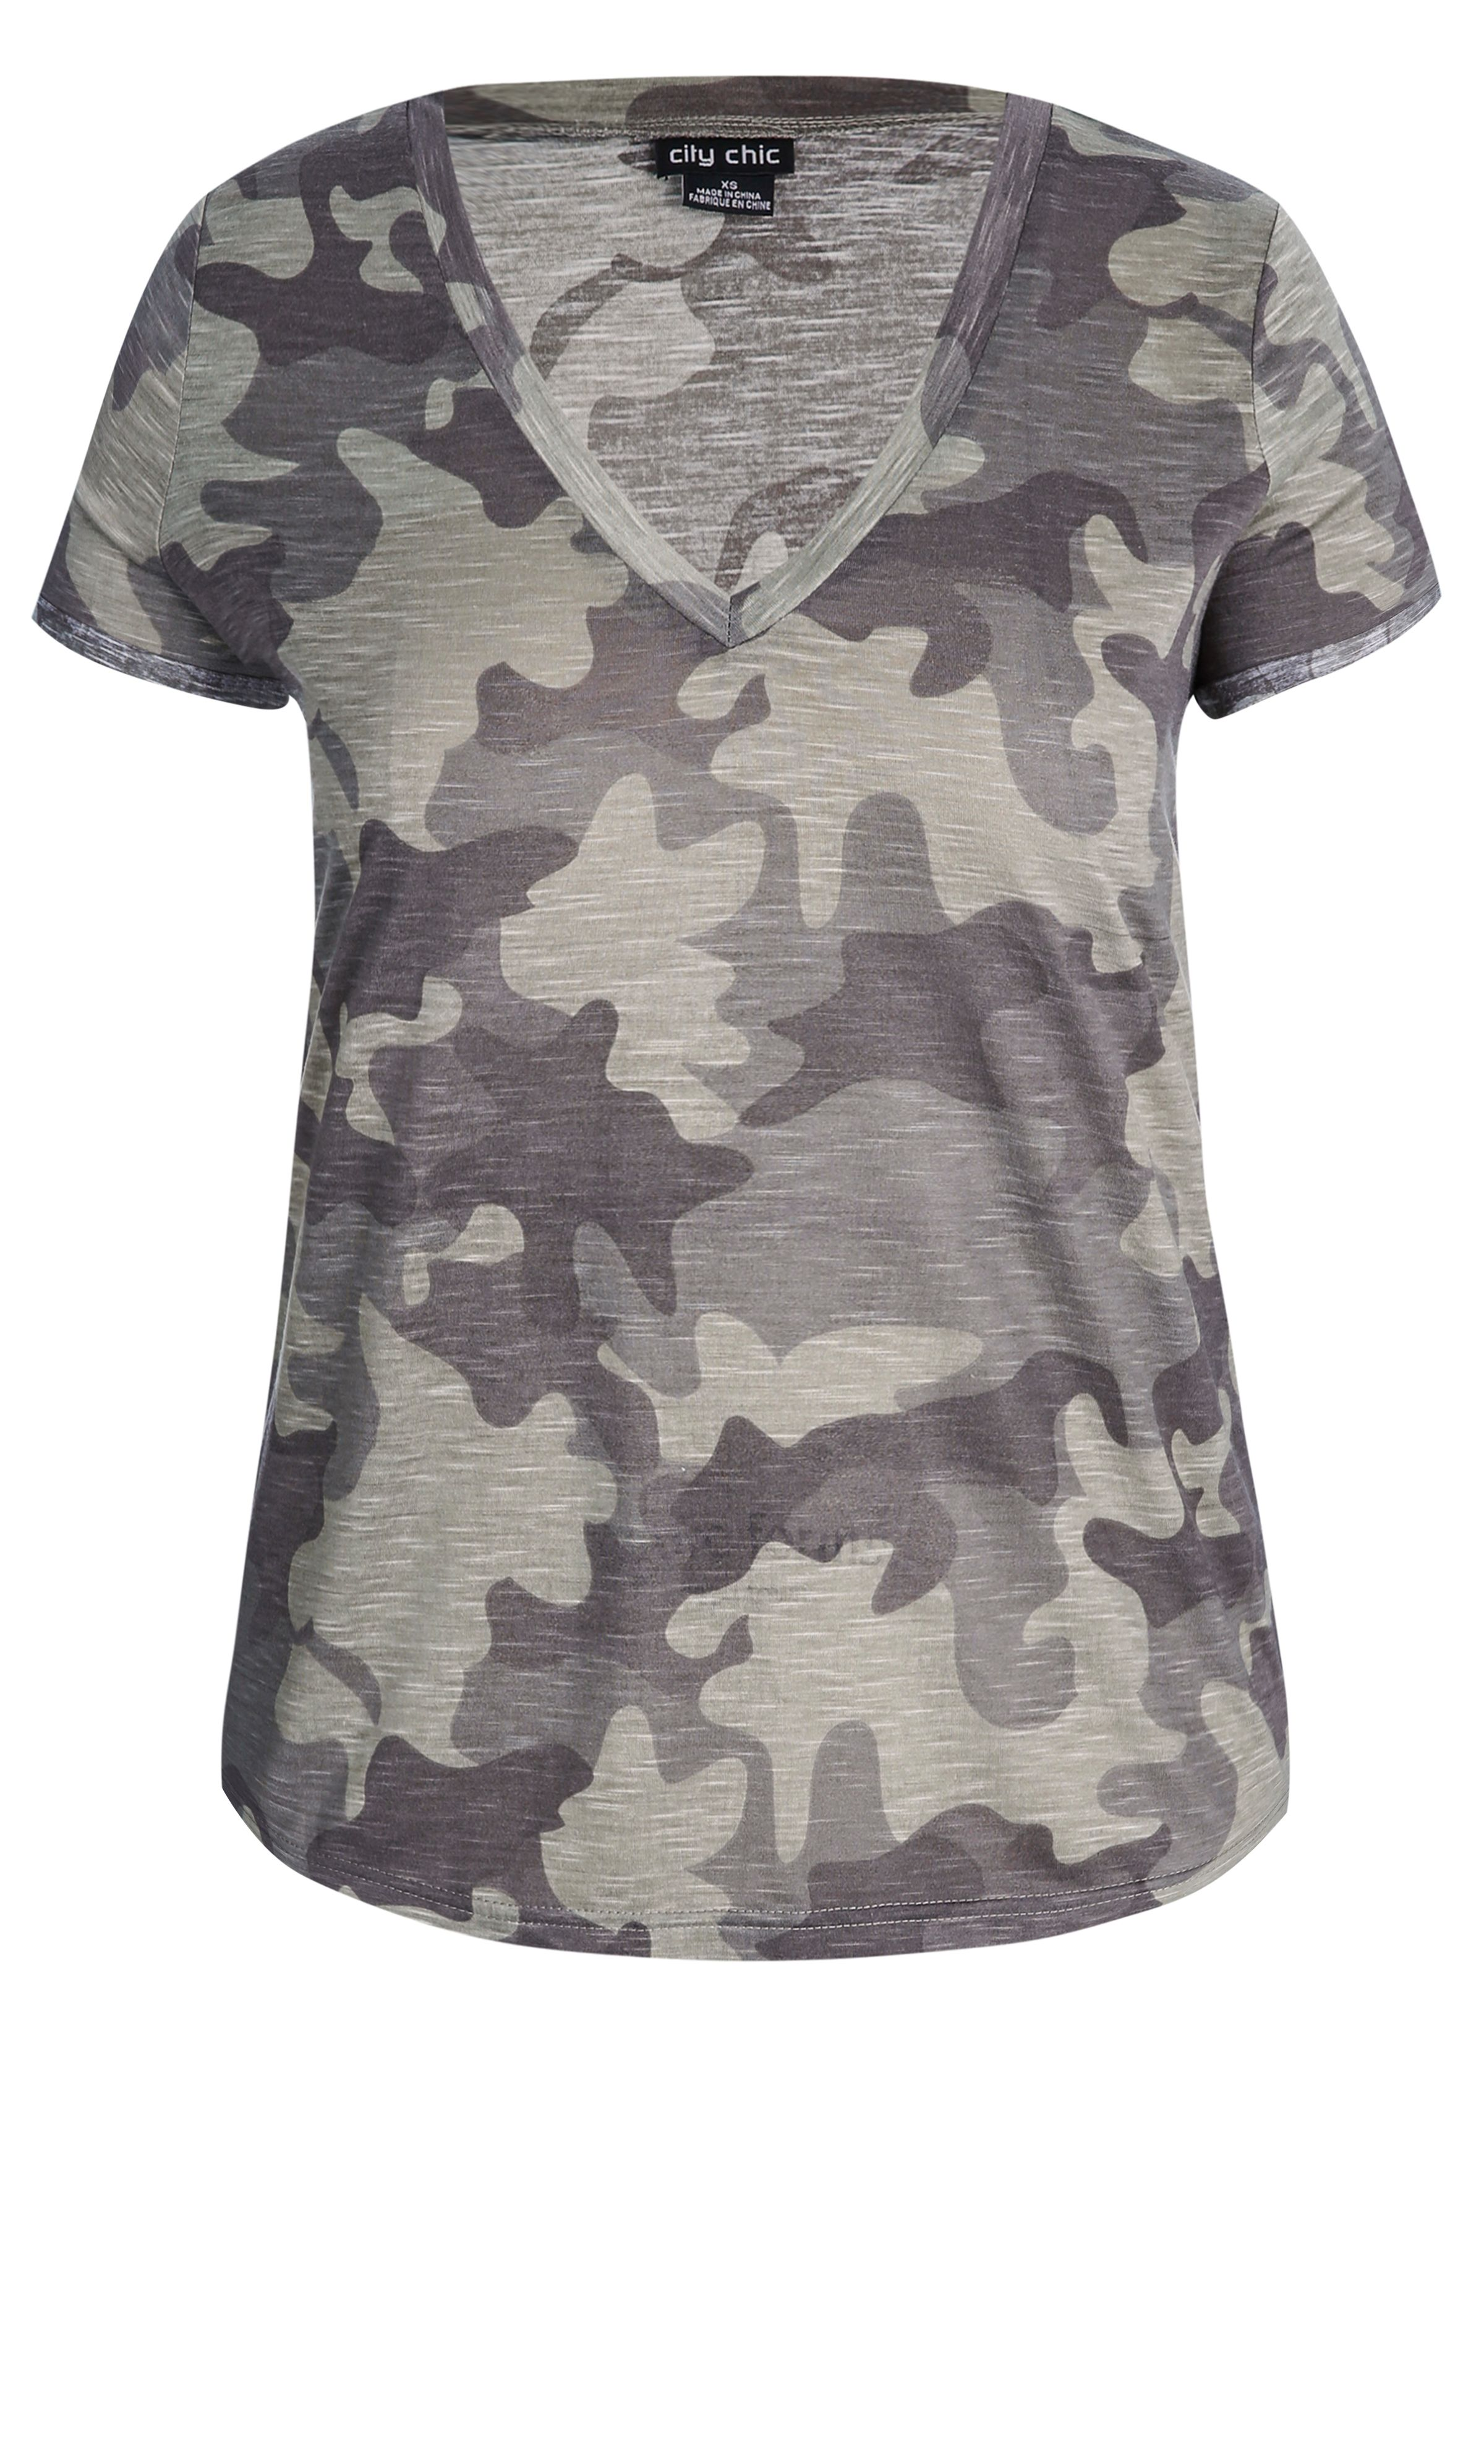 grunge up your day-to-day look with the cool camouflage top. key